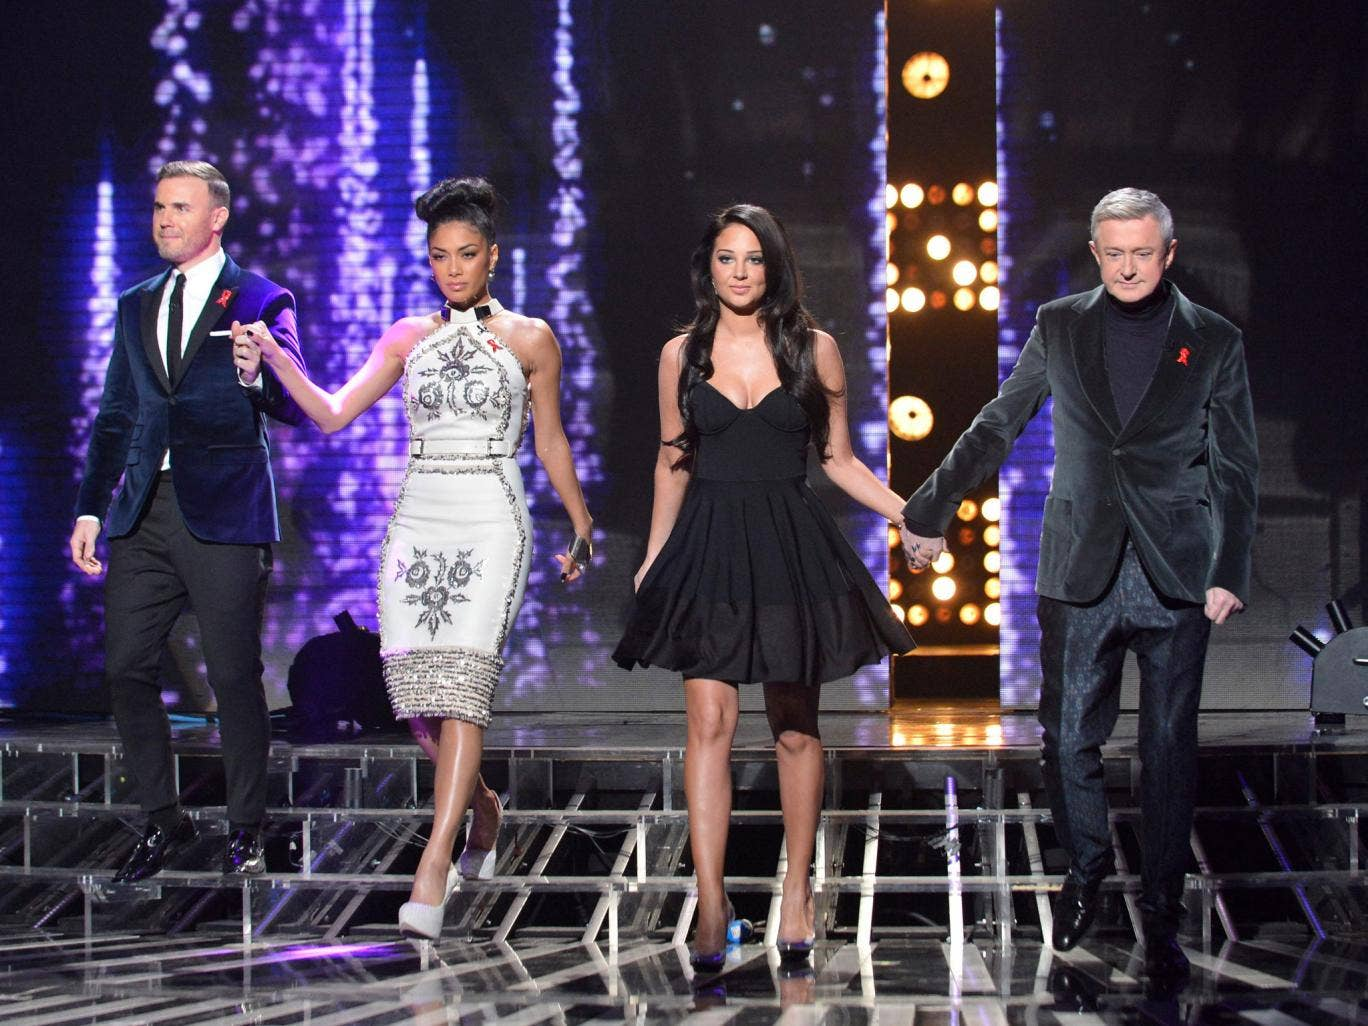 The B team: ITV has not been able to successfully replace Simon Cowell in the judges' line-up